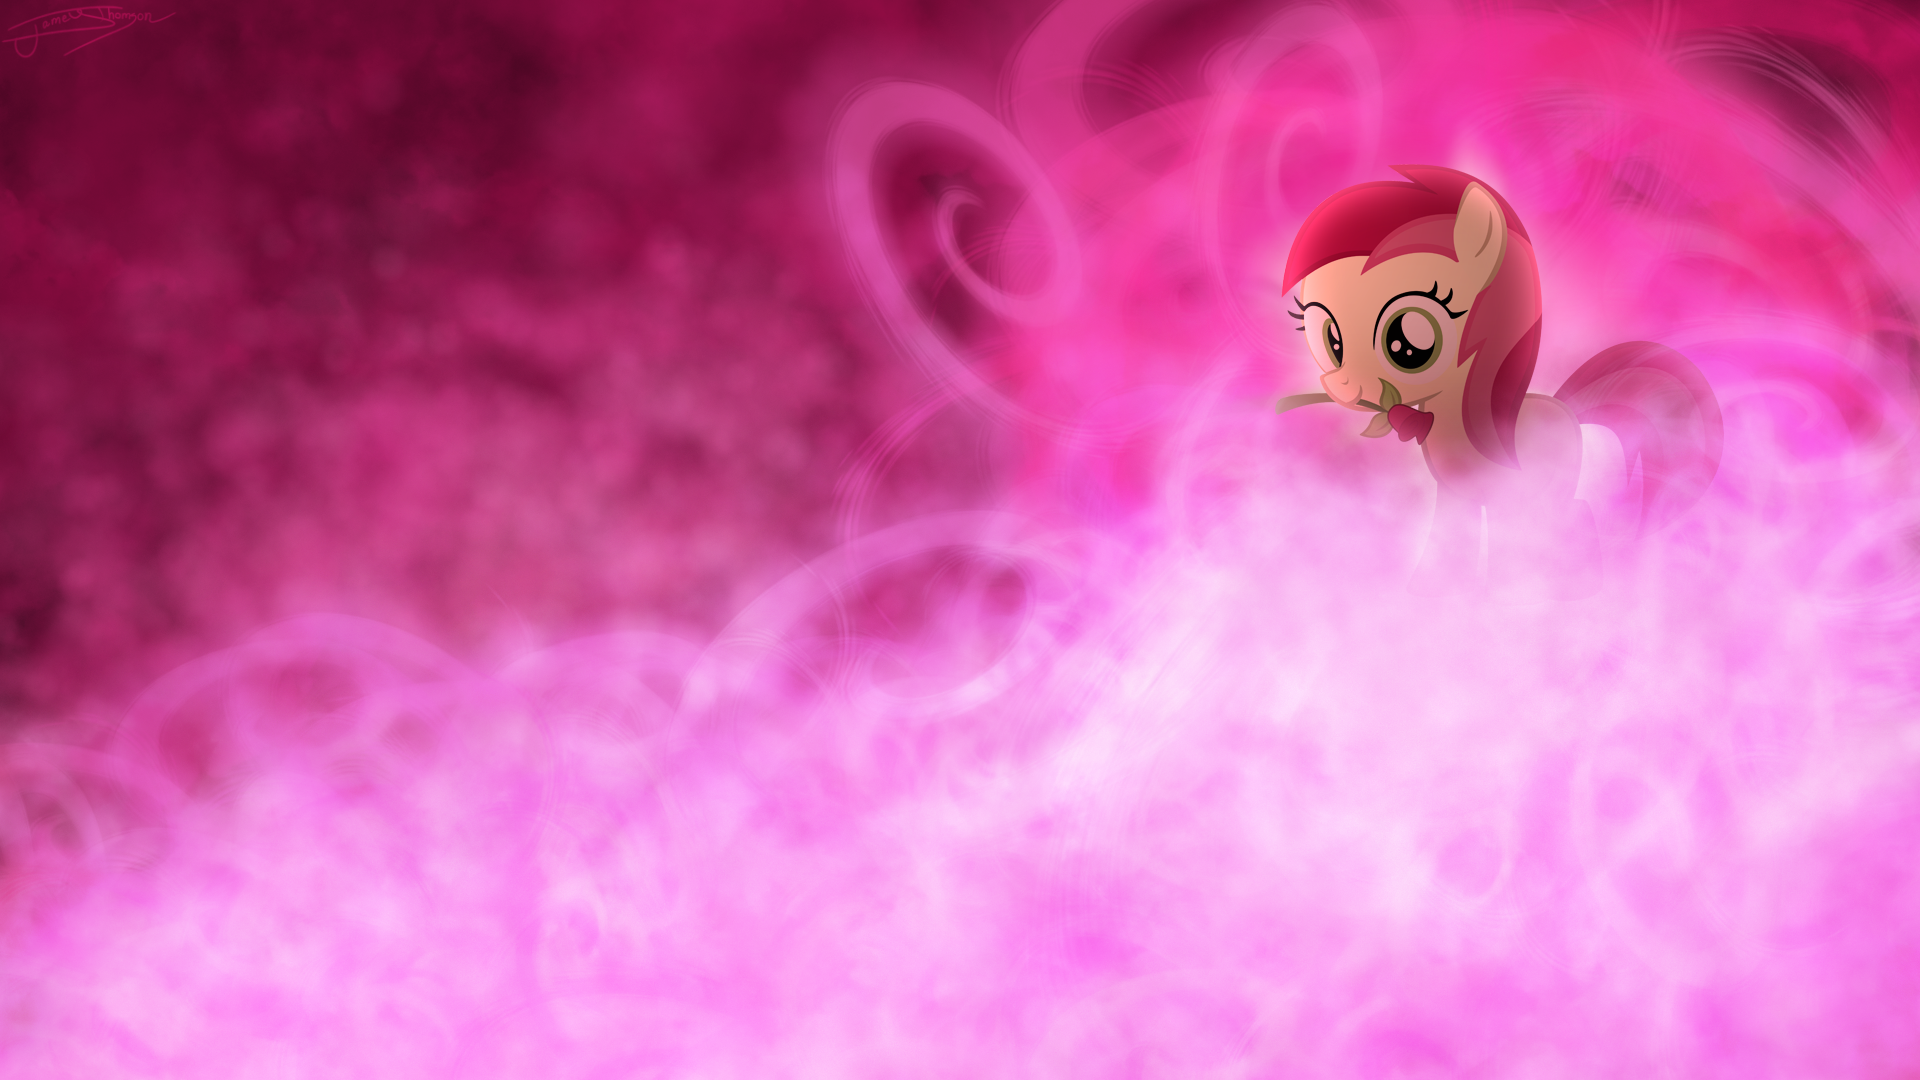 Rose - Filly Rose by Jamey4 and Rainbro41